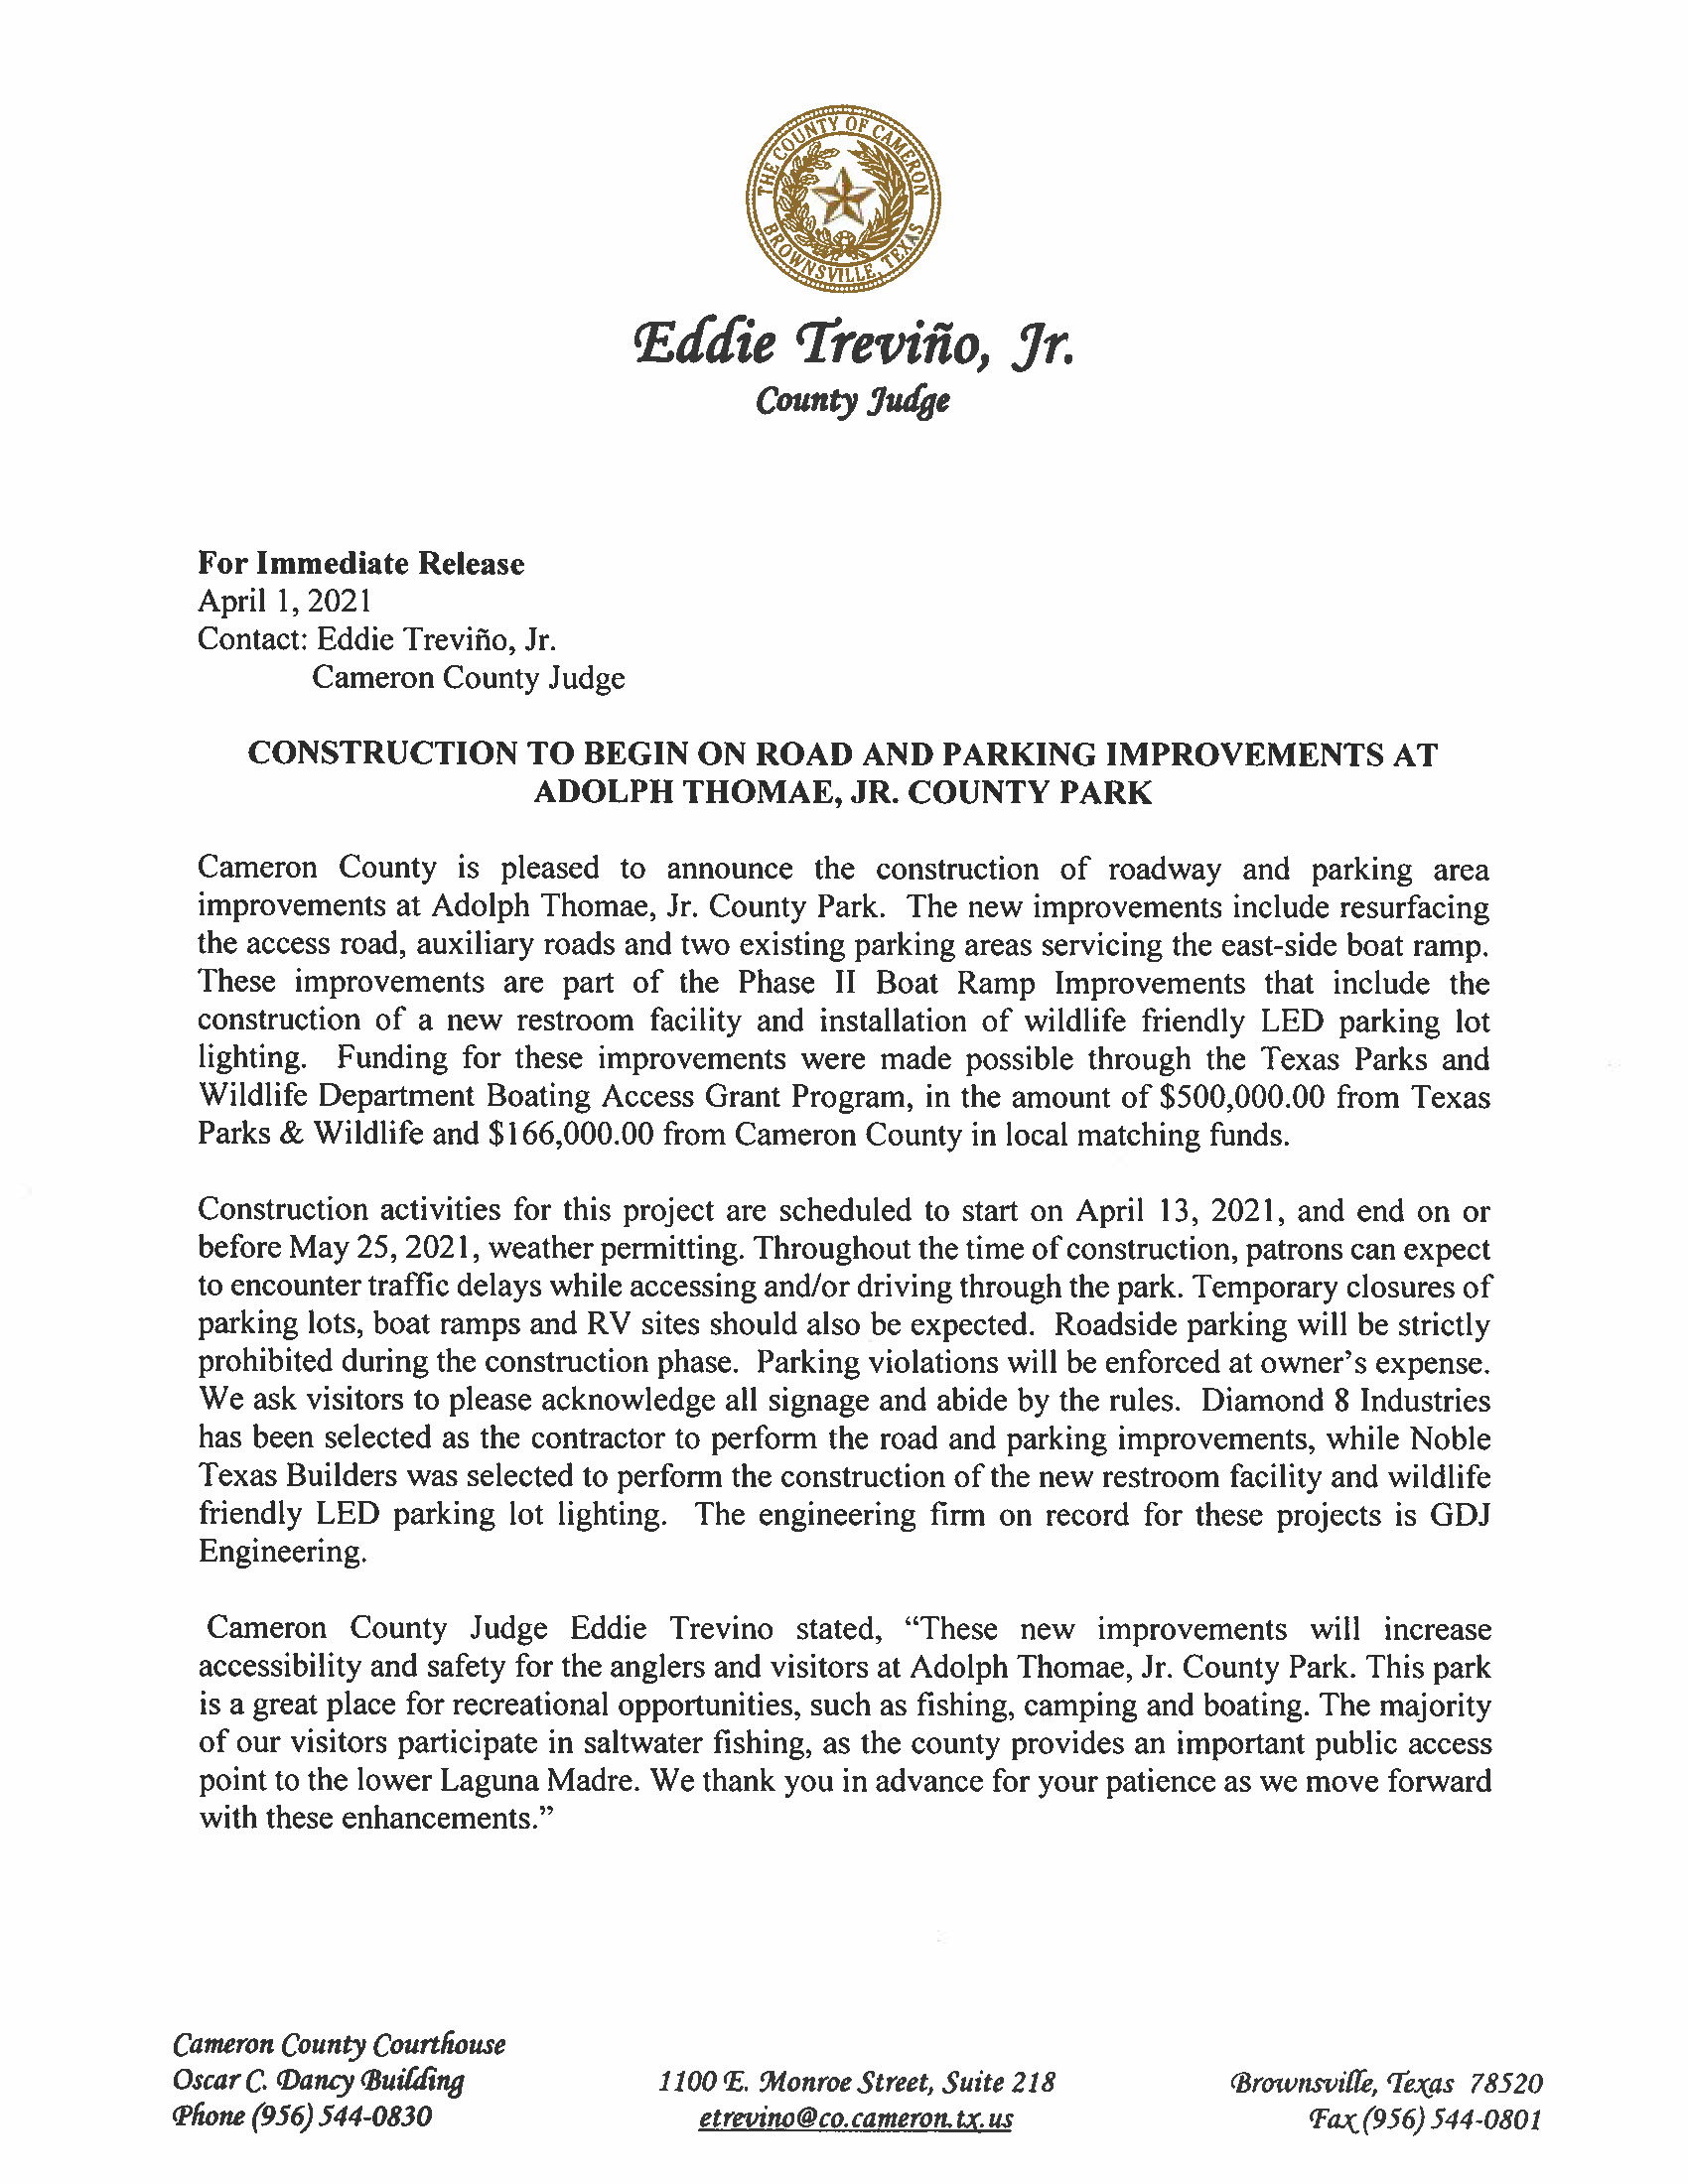 4.1.21 Construction To Begin On Road And Parking Improvements At Adolph Thomae Jr. County Park Page 1